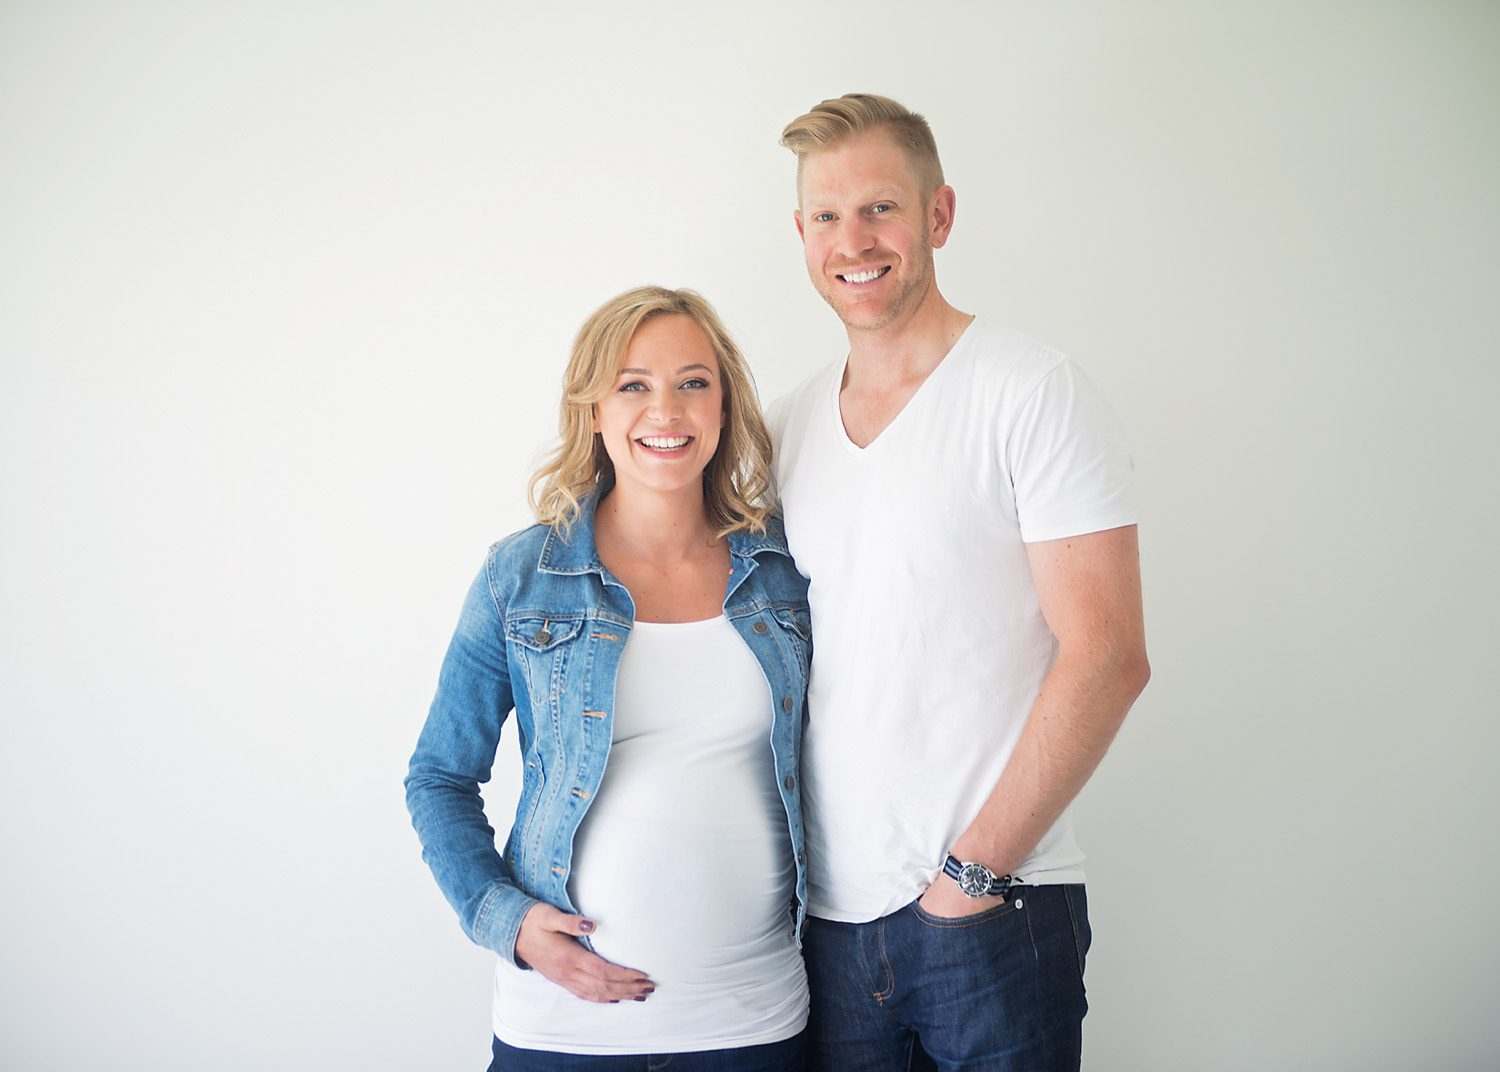 calgary maternity photography by brandy anderson